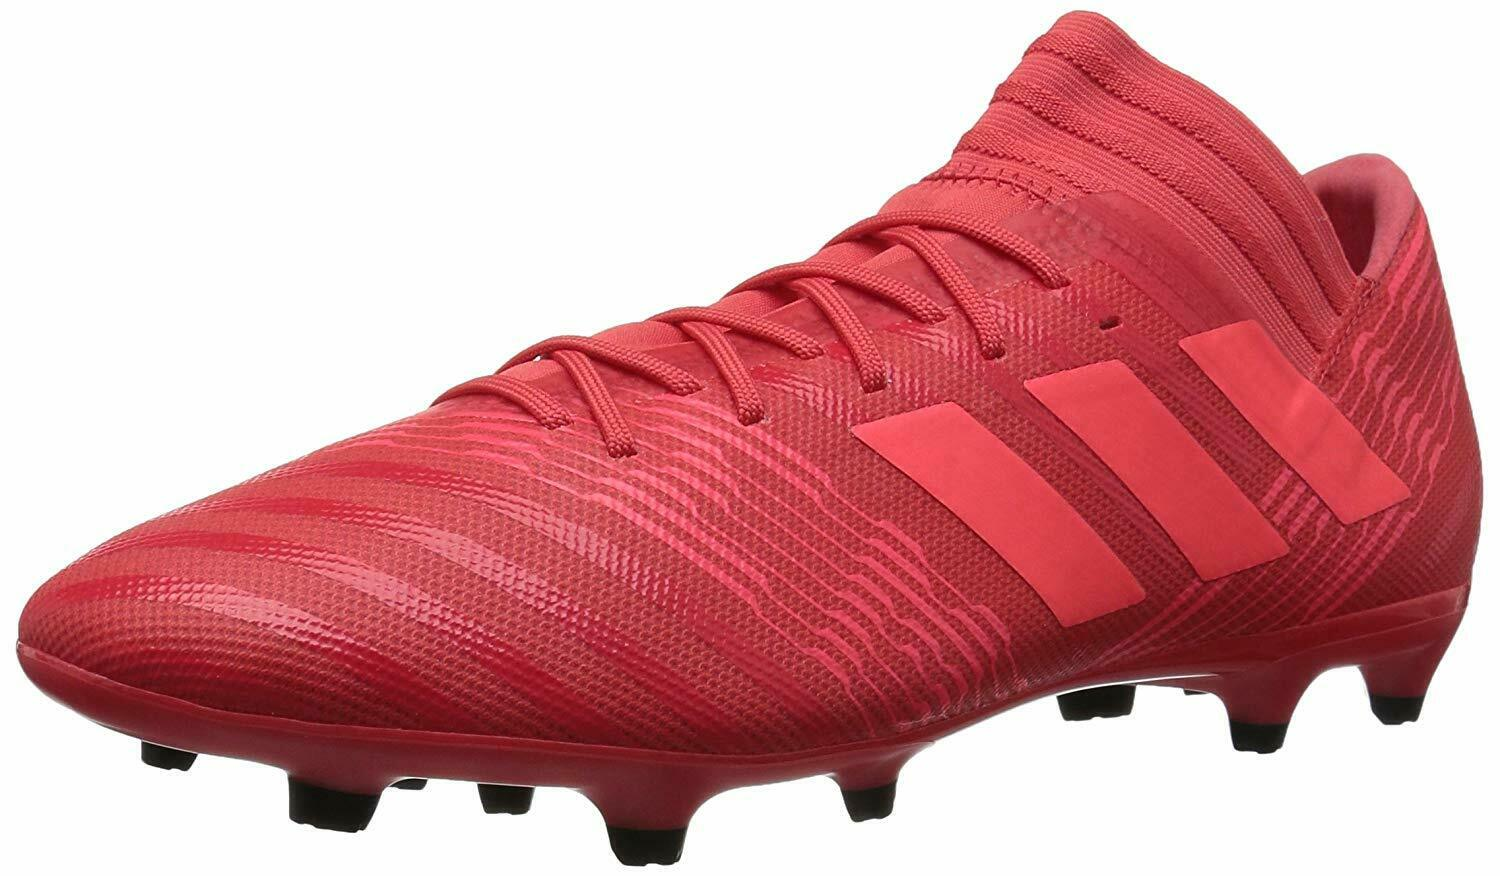 Adidas Men's Nemeziz 17.3 FG Soccer shoes